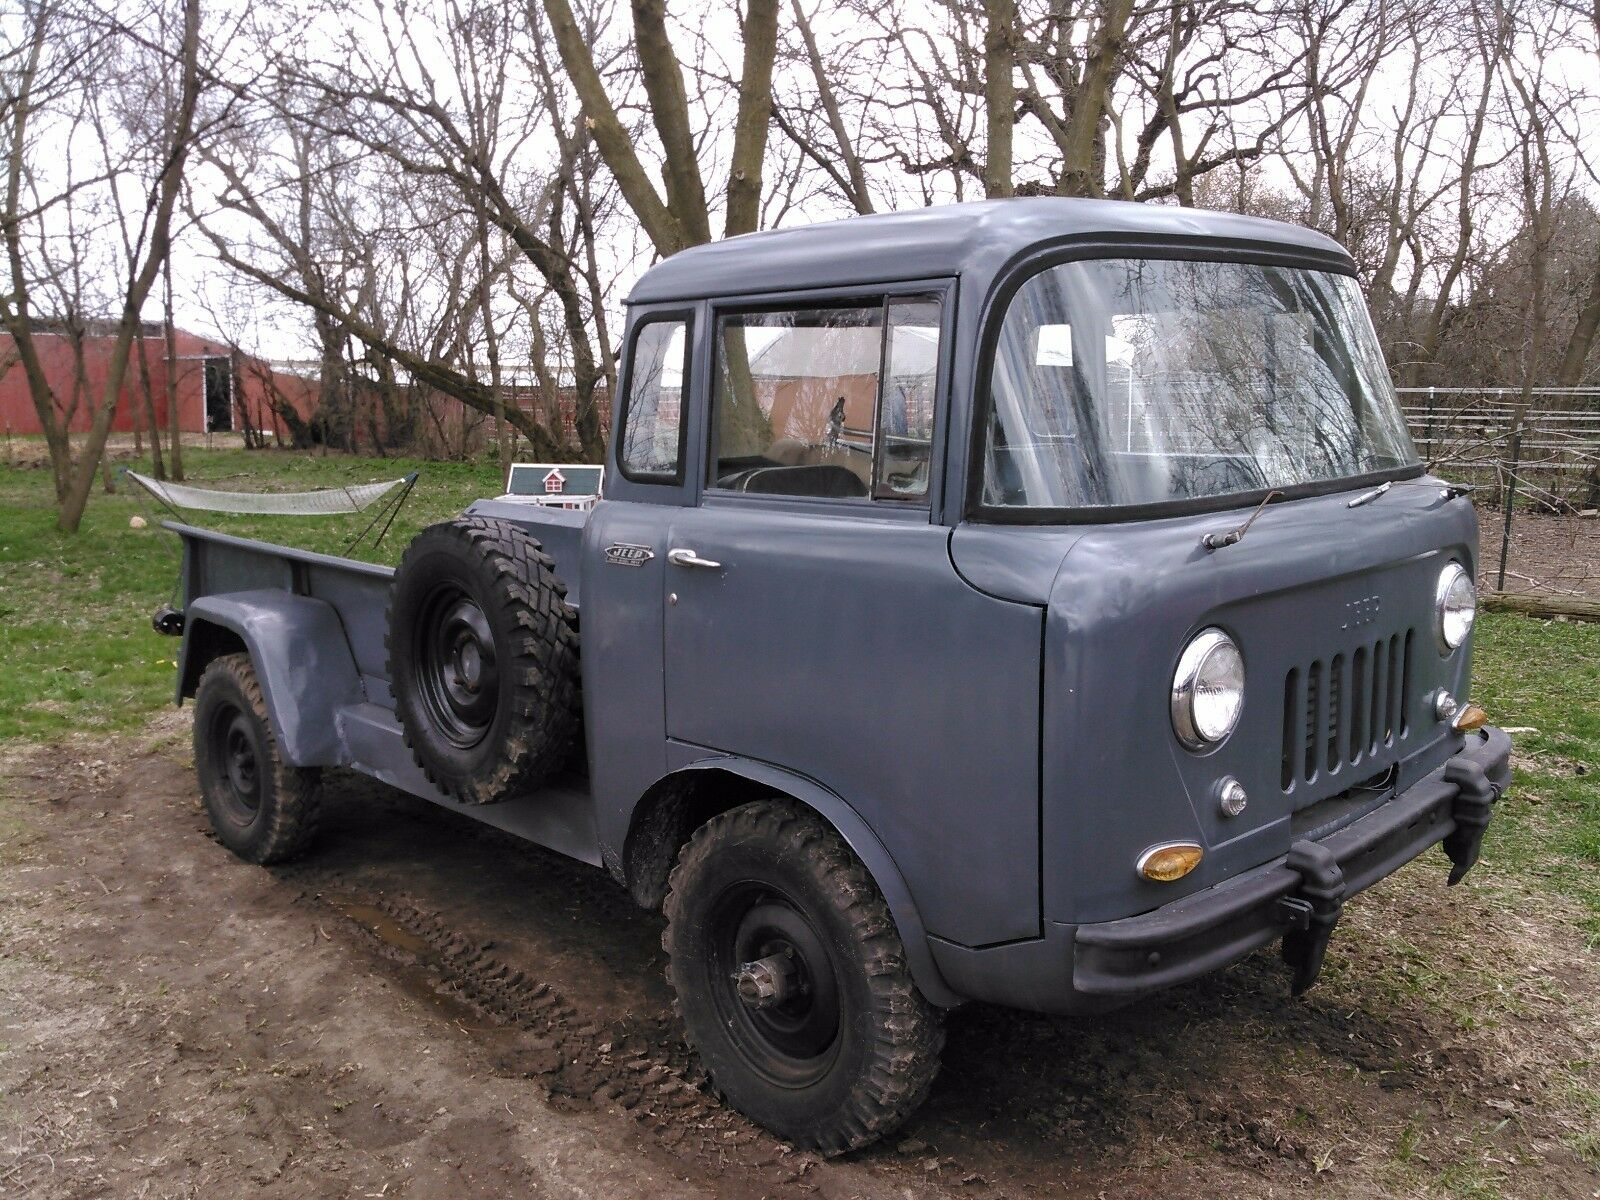 1958 willys overland fc170 jeep used willys other pickups for sale in mukwonago wisconsin. Black Bedroom Furniture Sets. Home Design Ideas